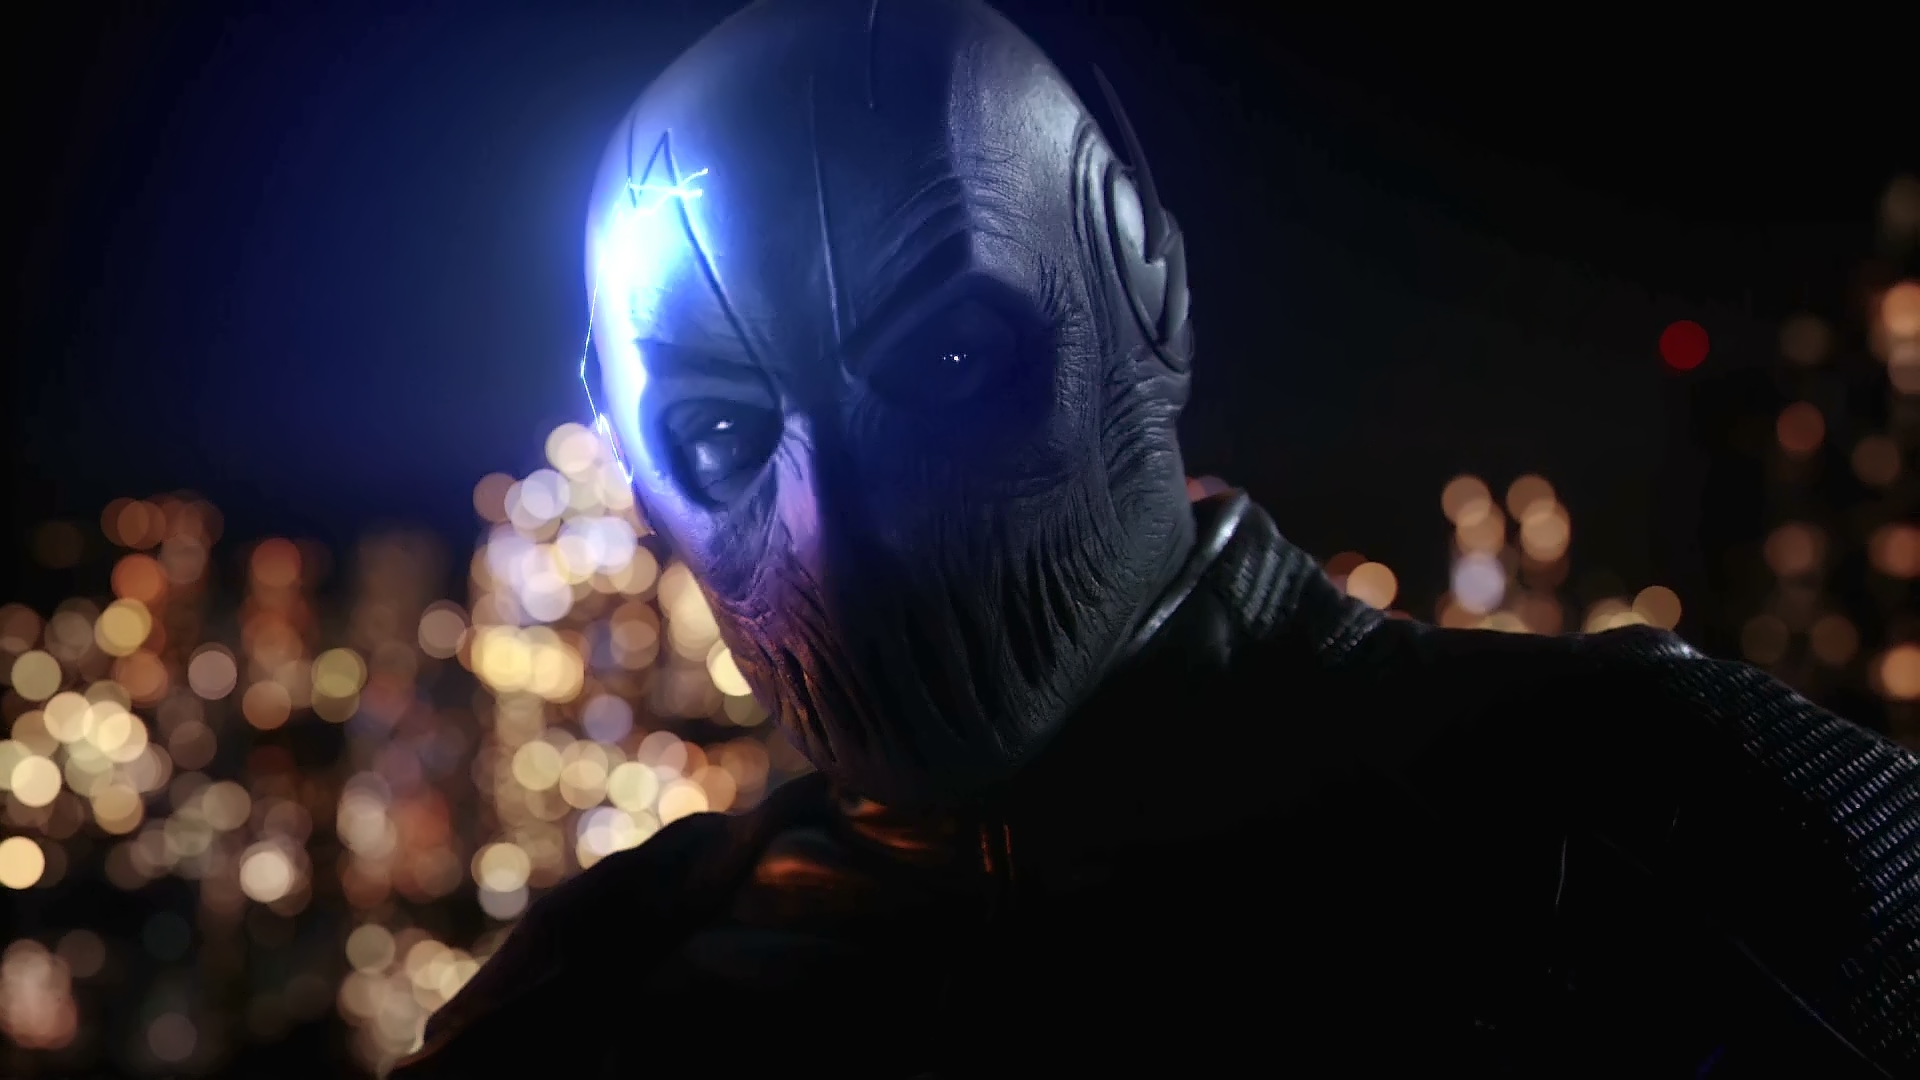 The Flash Cw Images Zoom Is Here Hd Wallpaper And Background